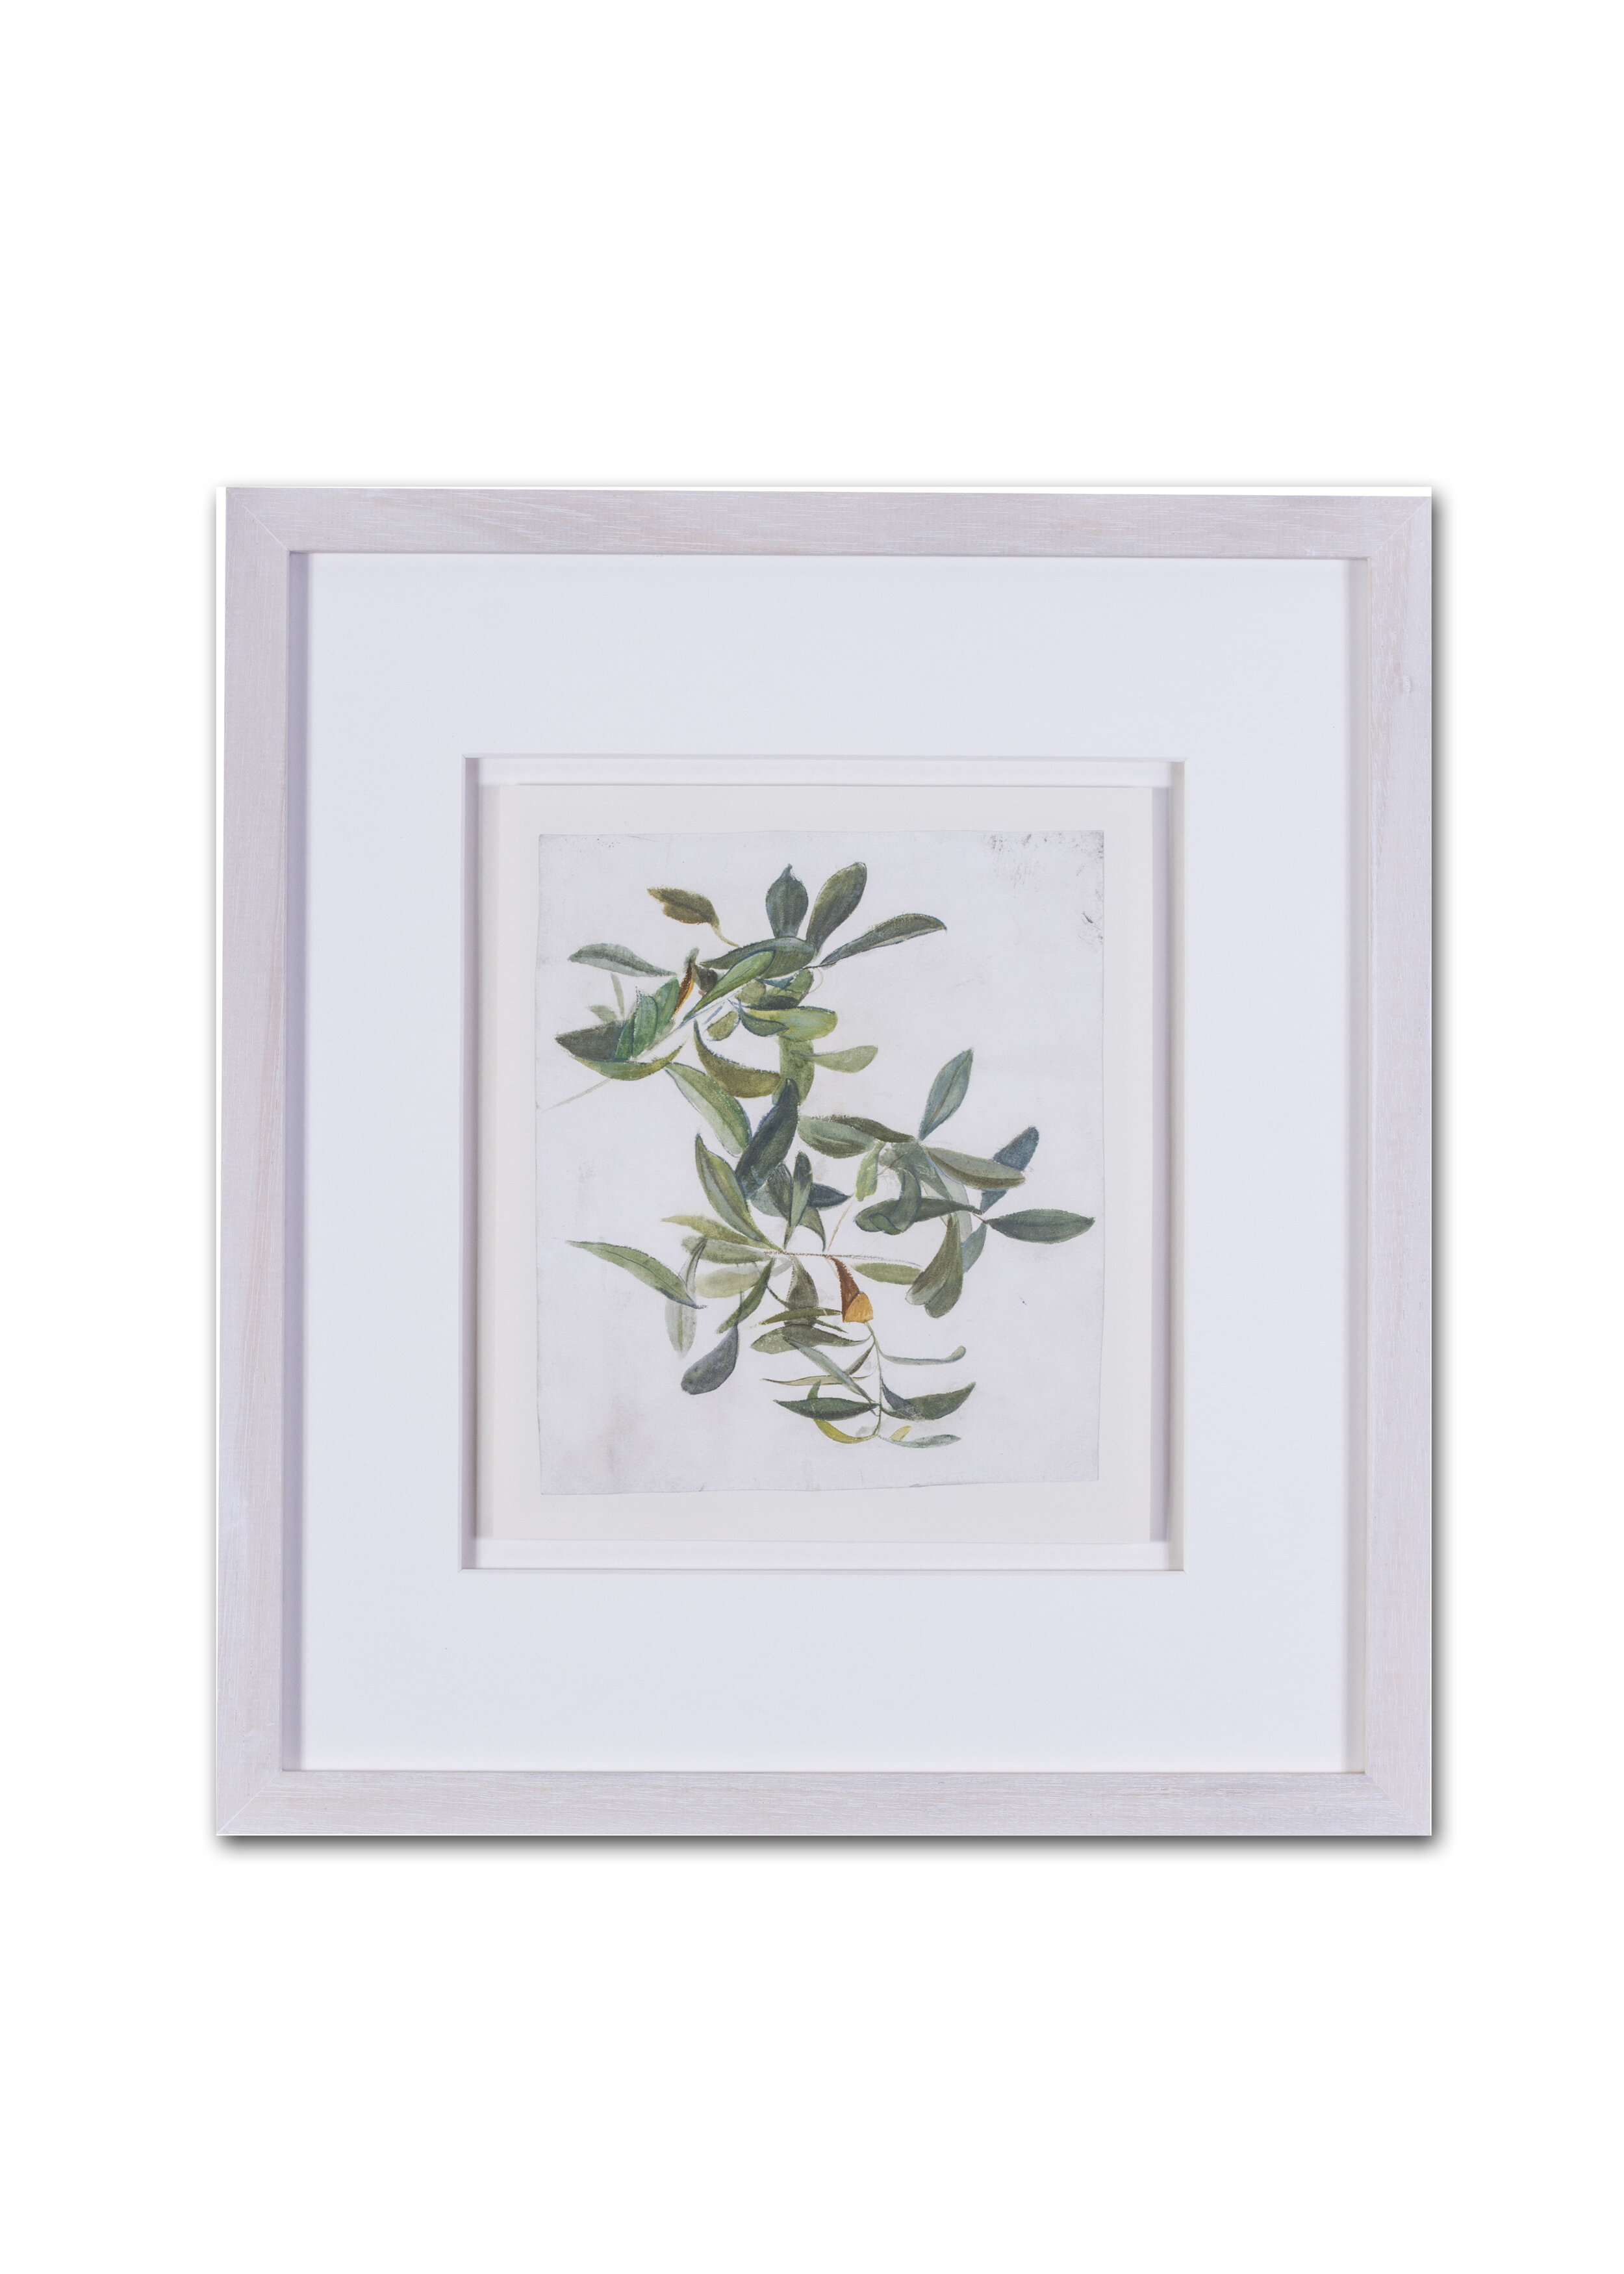 Evelyn de Morgan    An Olive Branch    Price: £1,900